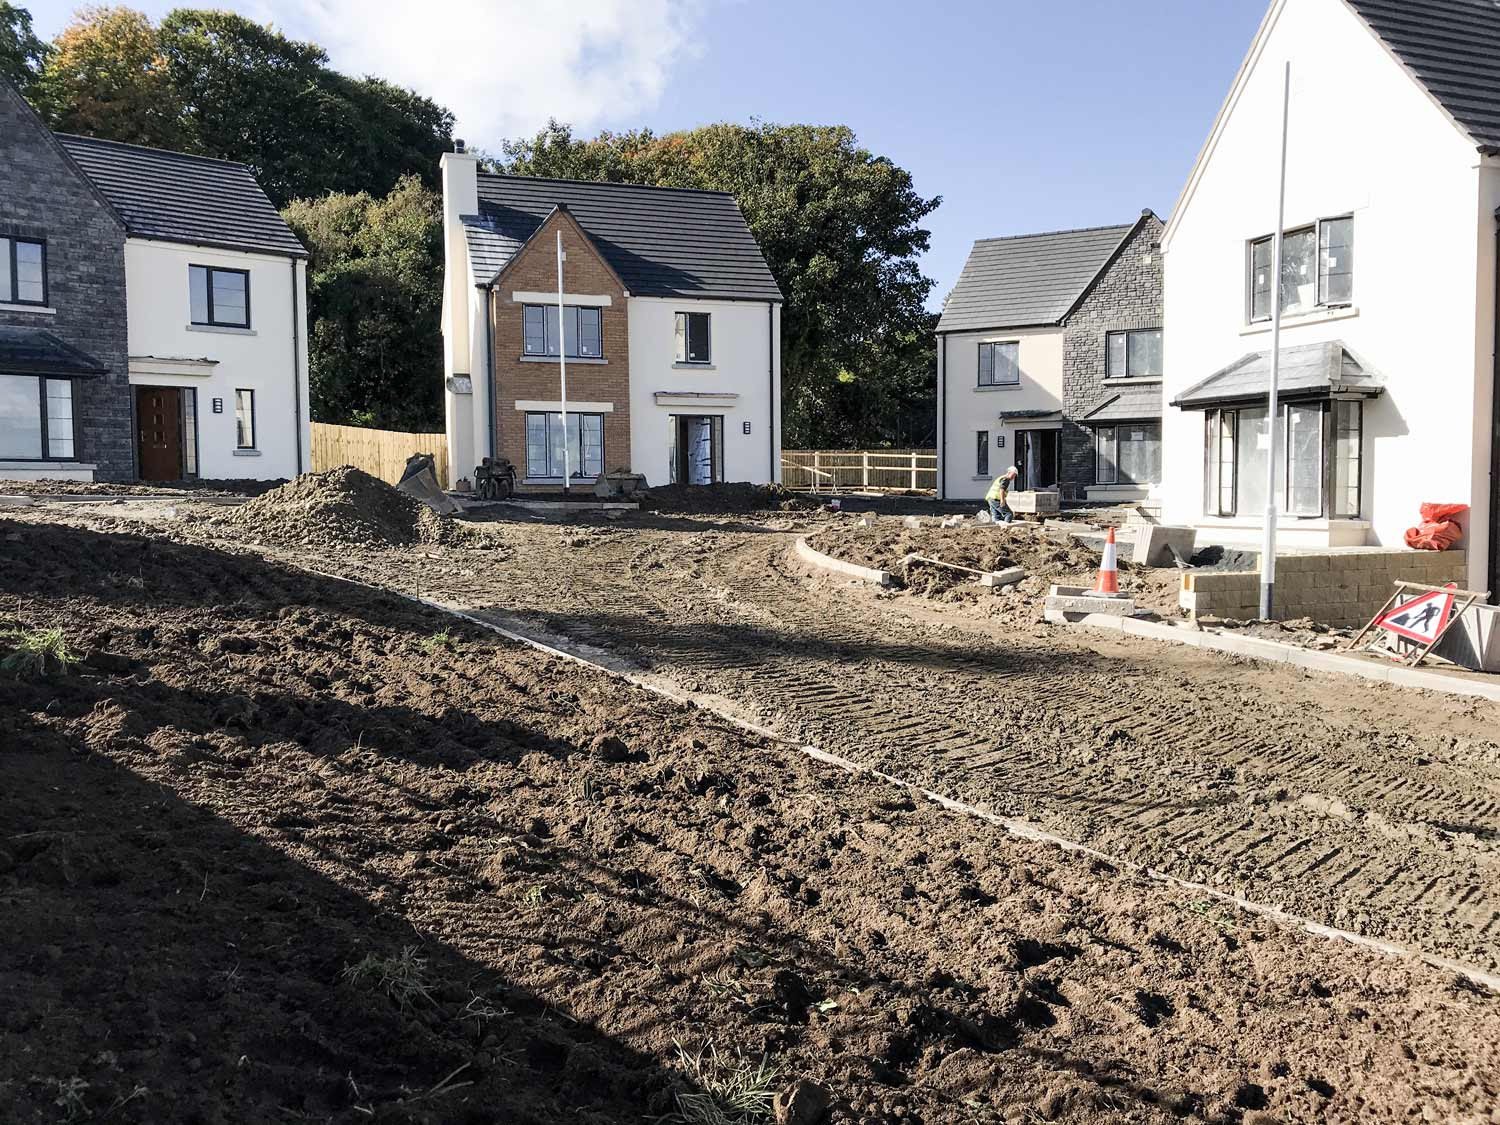 A 255 Home Development starts in Newry